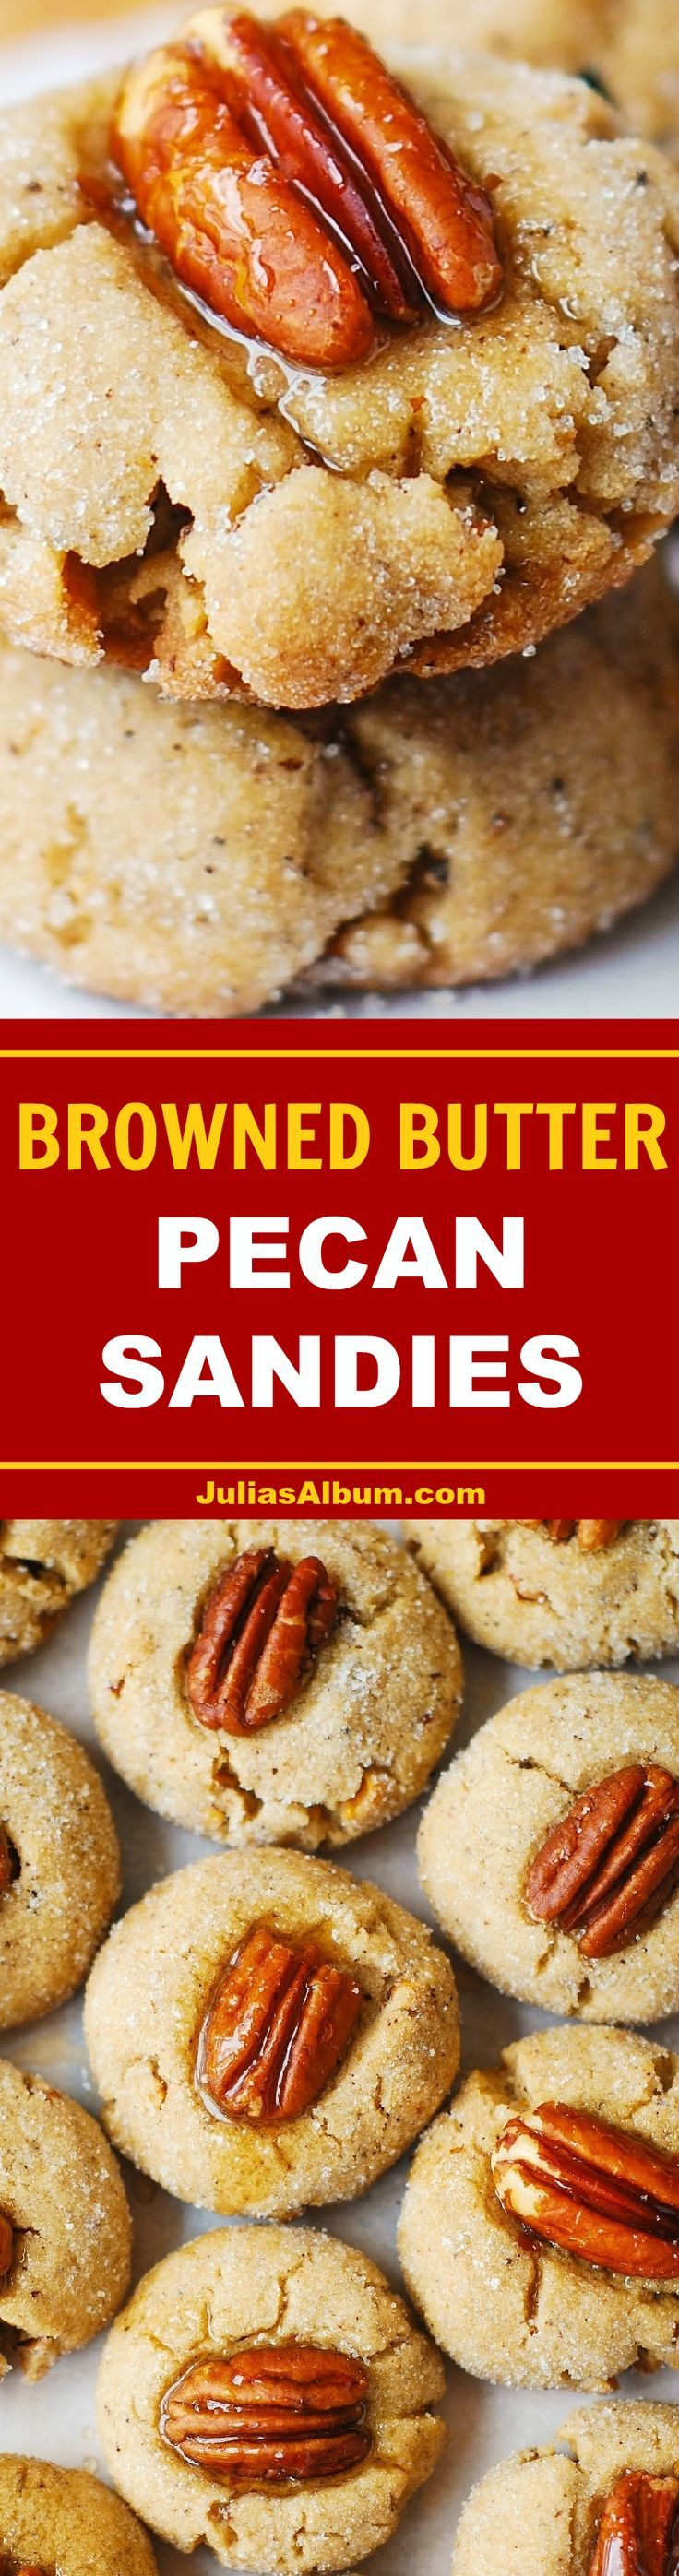 Browned Butter Pecan Sandies - perfect cookies for Thanksgiving and the holiday season! #Fall holiday baking